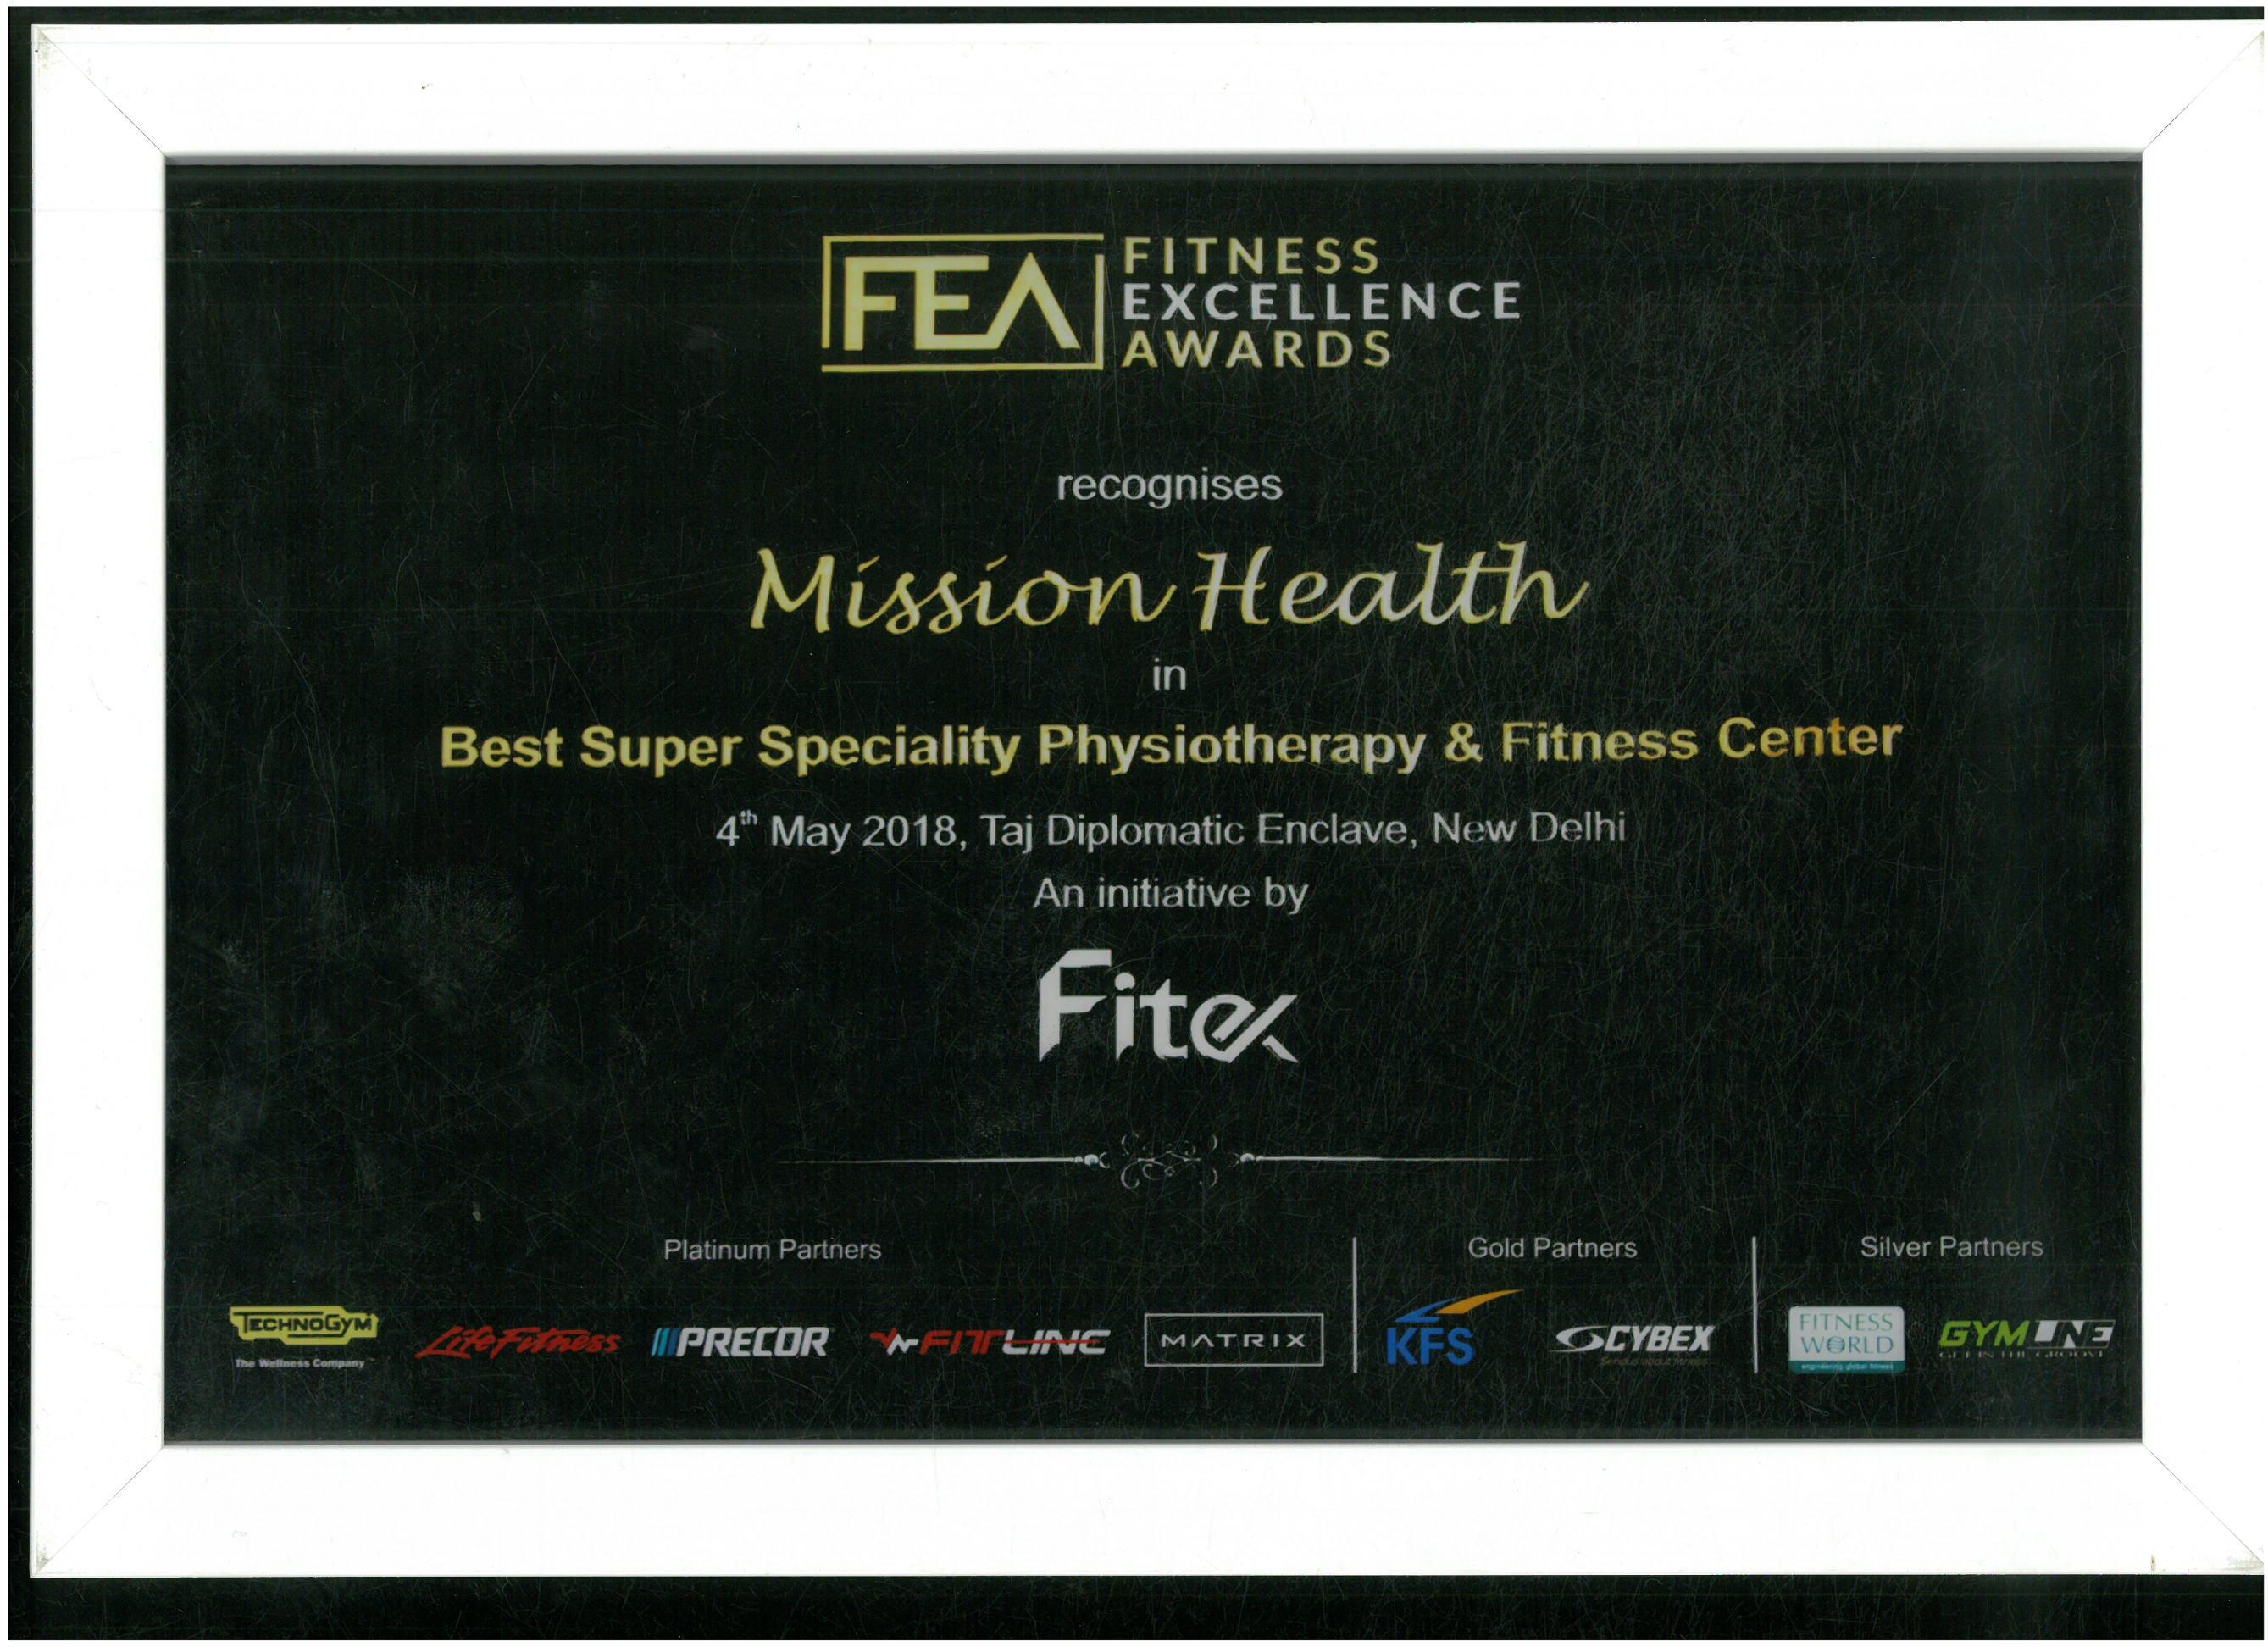 Fitness Excellence Awards, 2018 to Mission Health as Best Super Speciality Physiotherapy & Fitness Center.